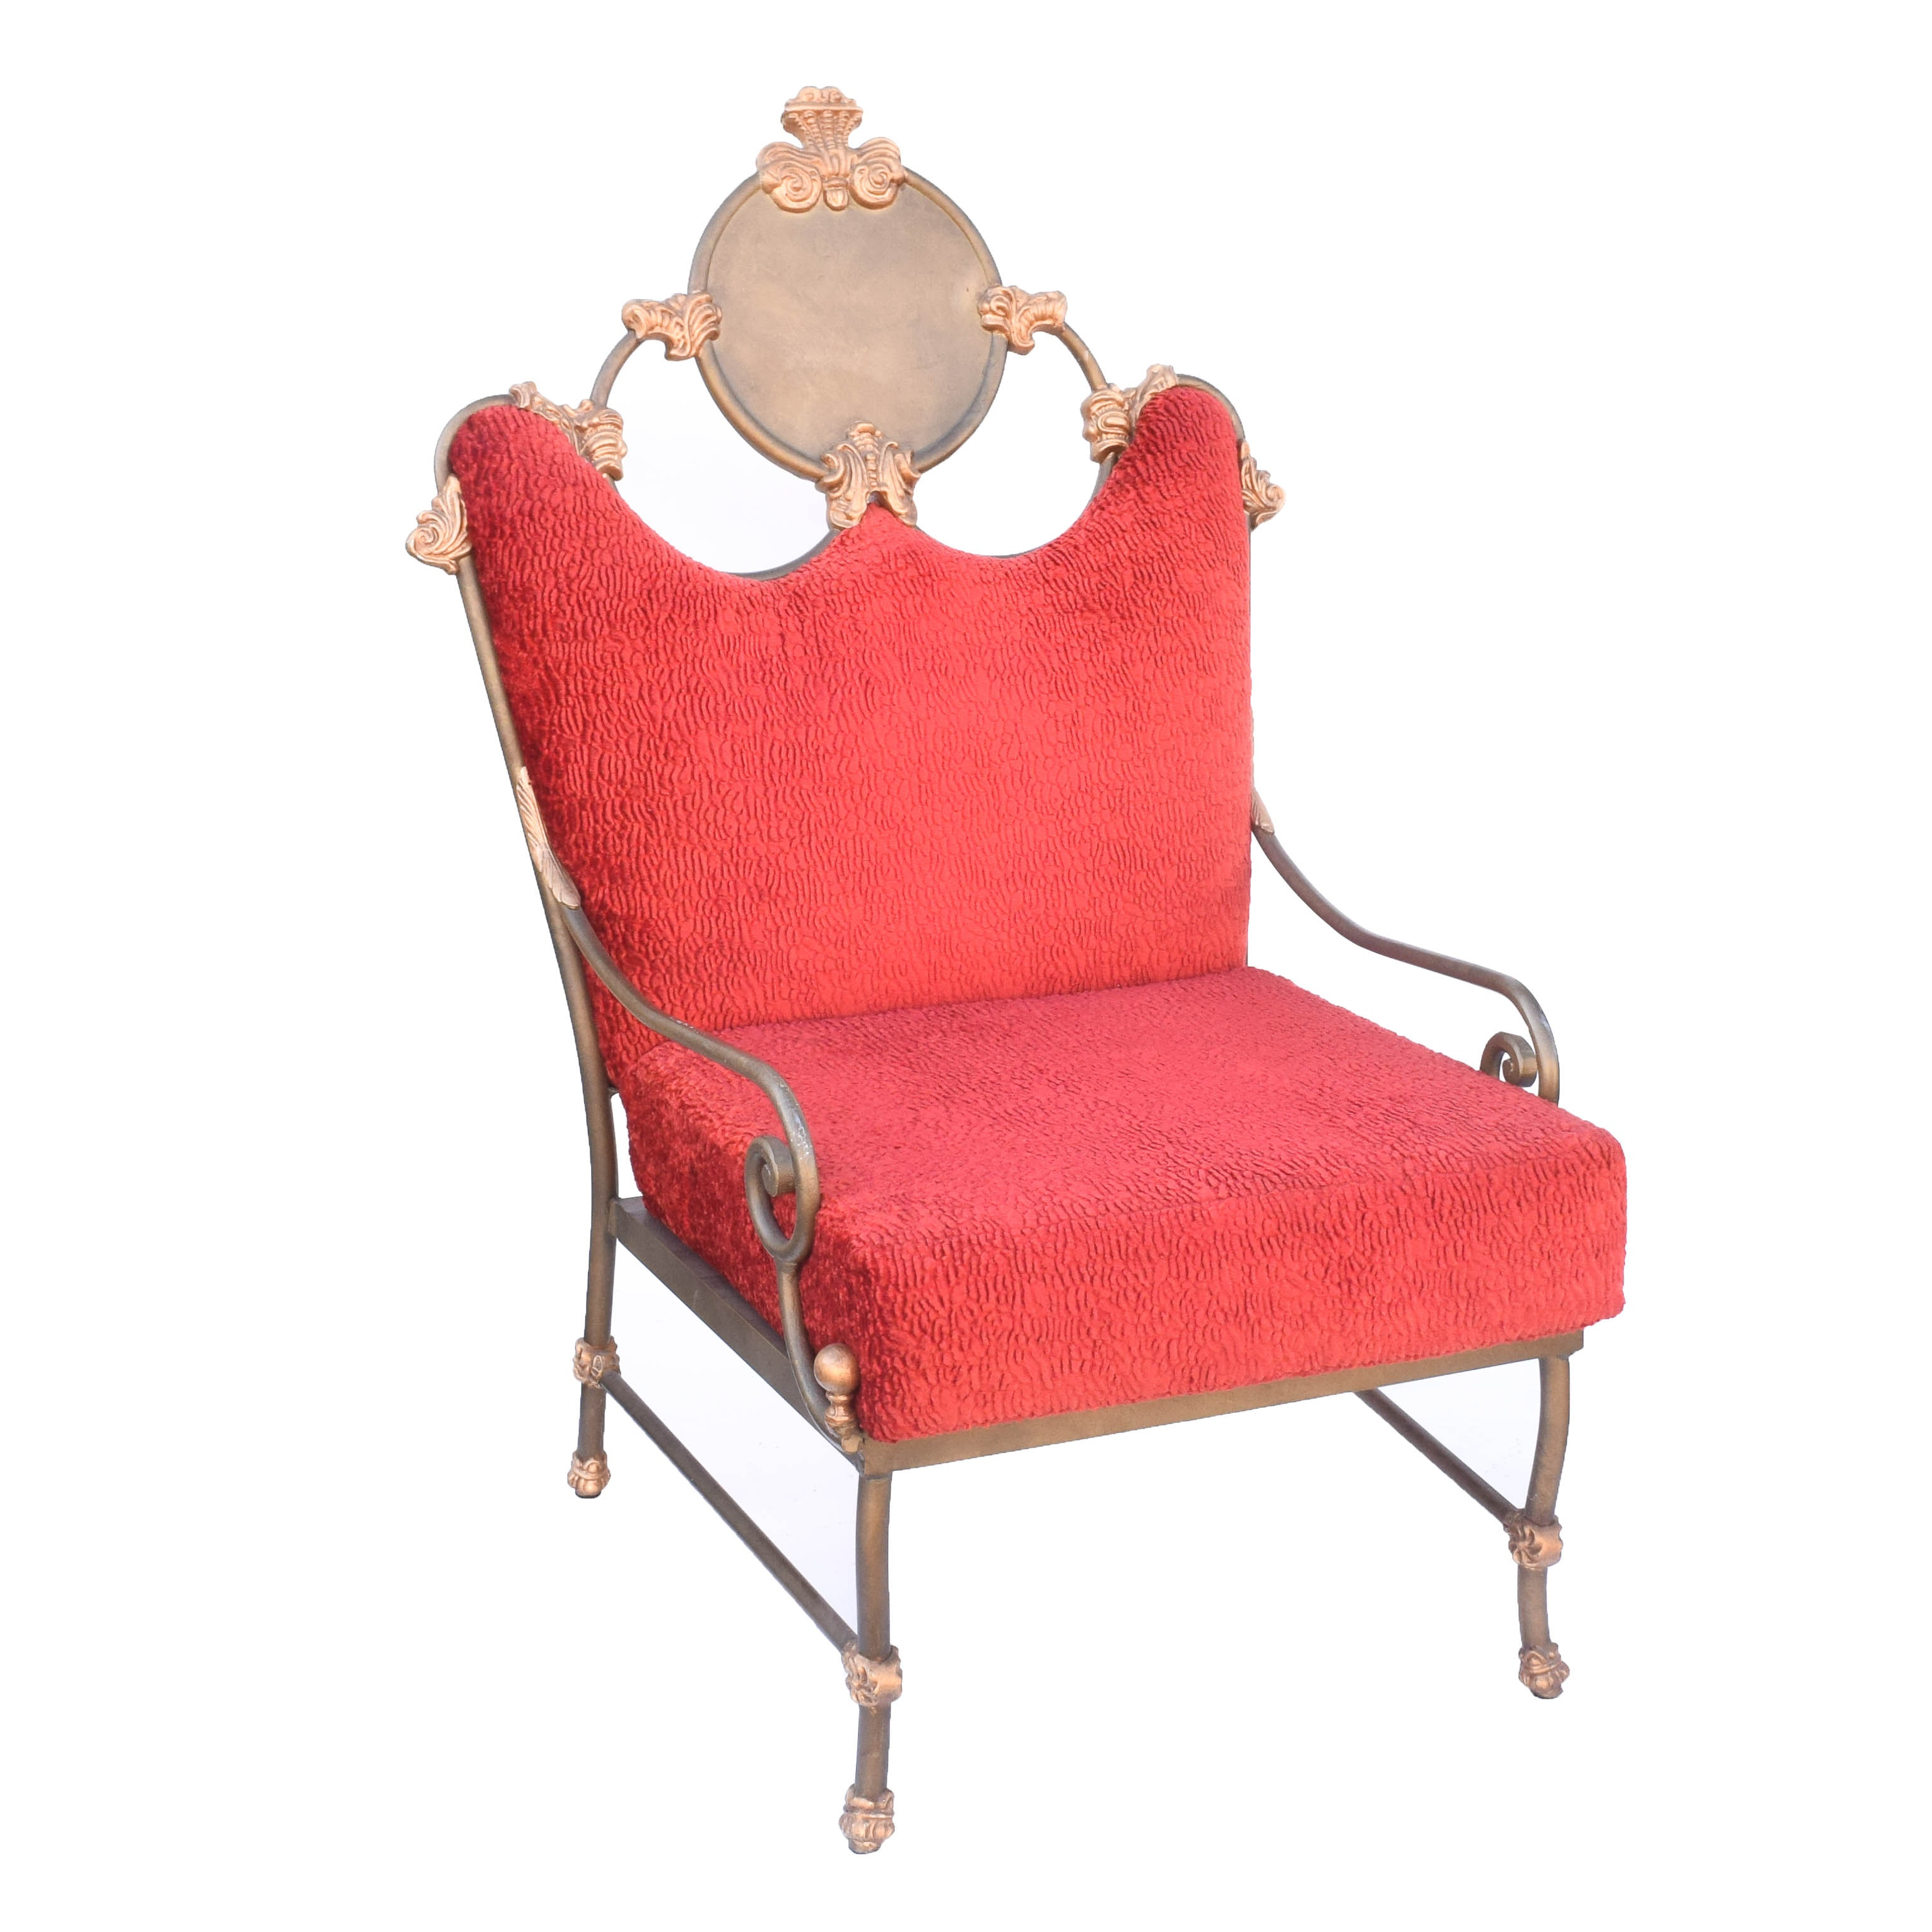 Neoclassical Inspired Metal Accent Chair with Red Upholstery